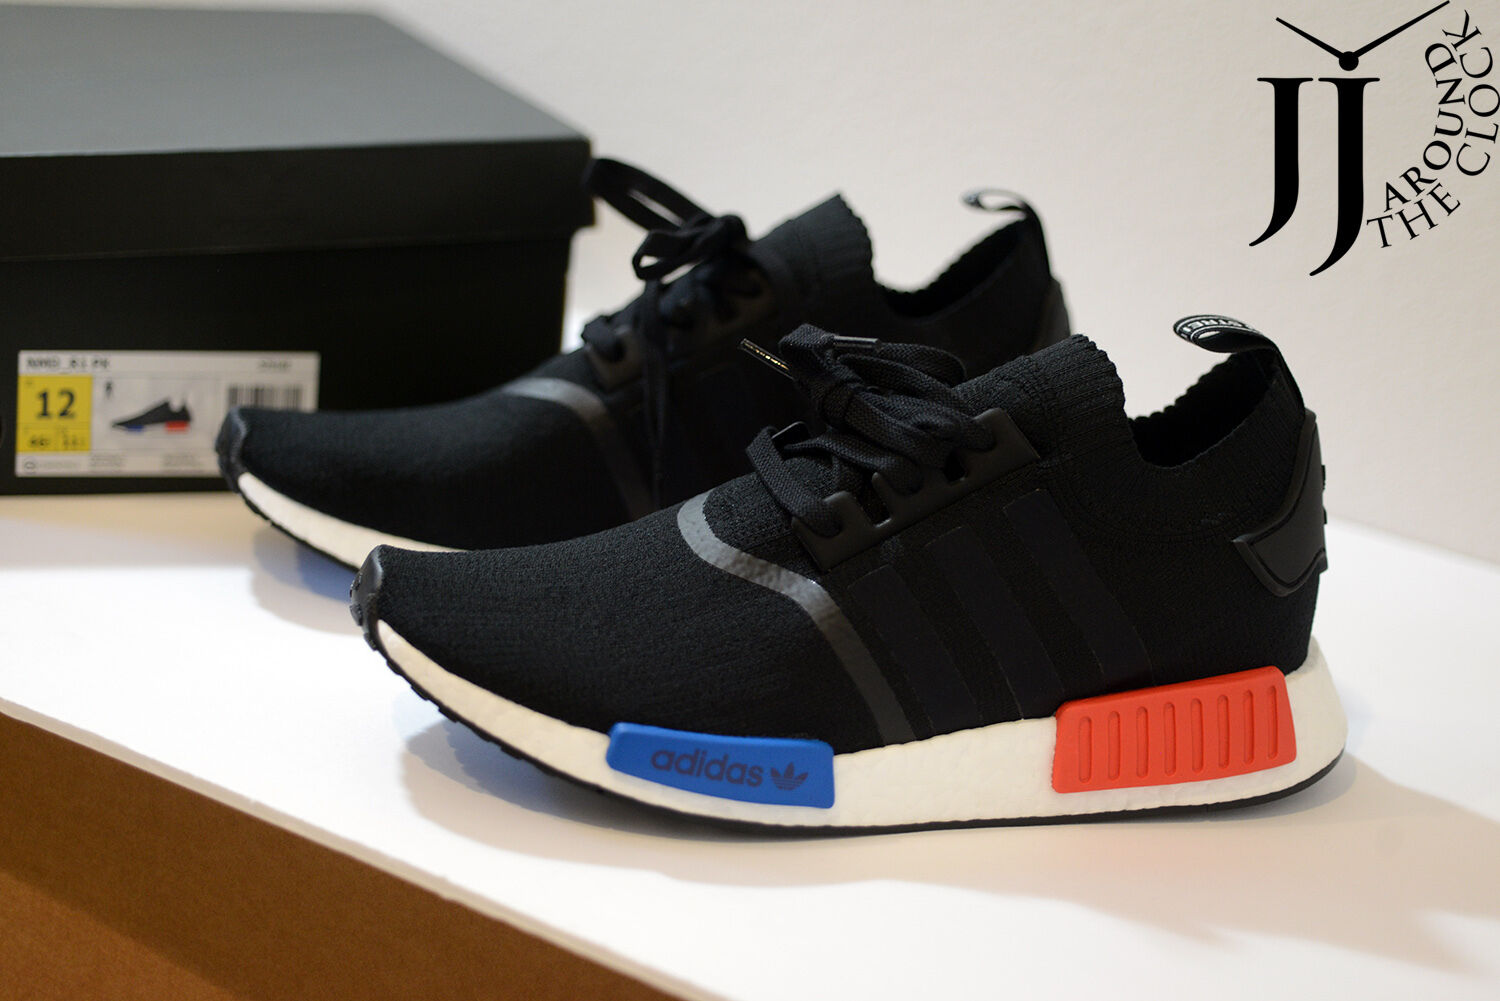 New ADIDAS NMD Core Runner PK OG Primeknit Core NMD Black Nomad 12 US S79168 2017 Ver a06edf